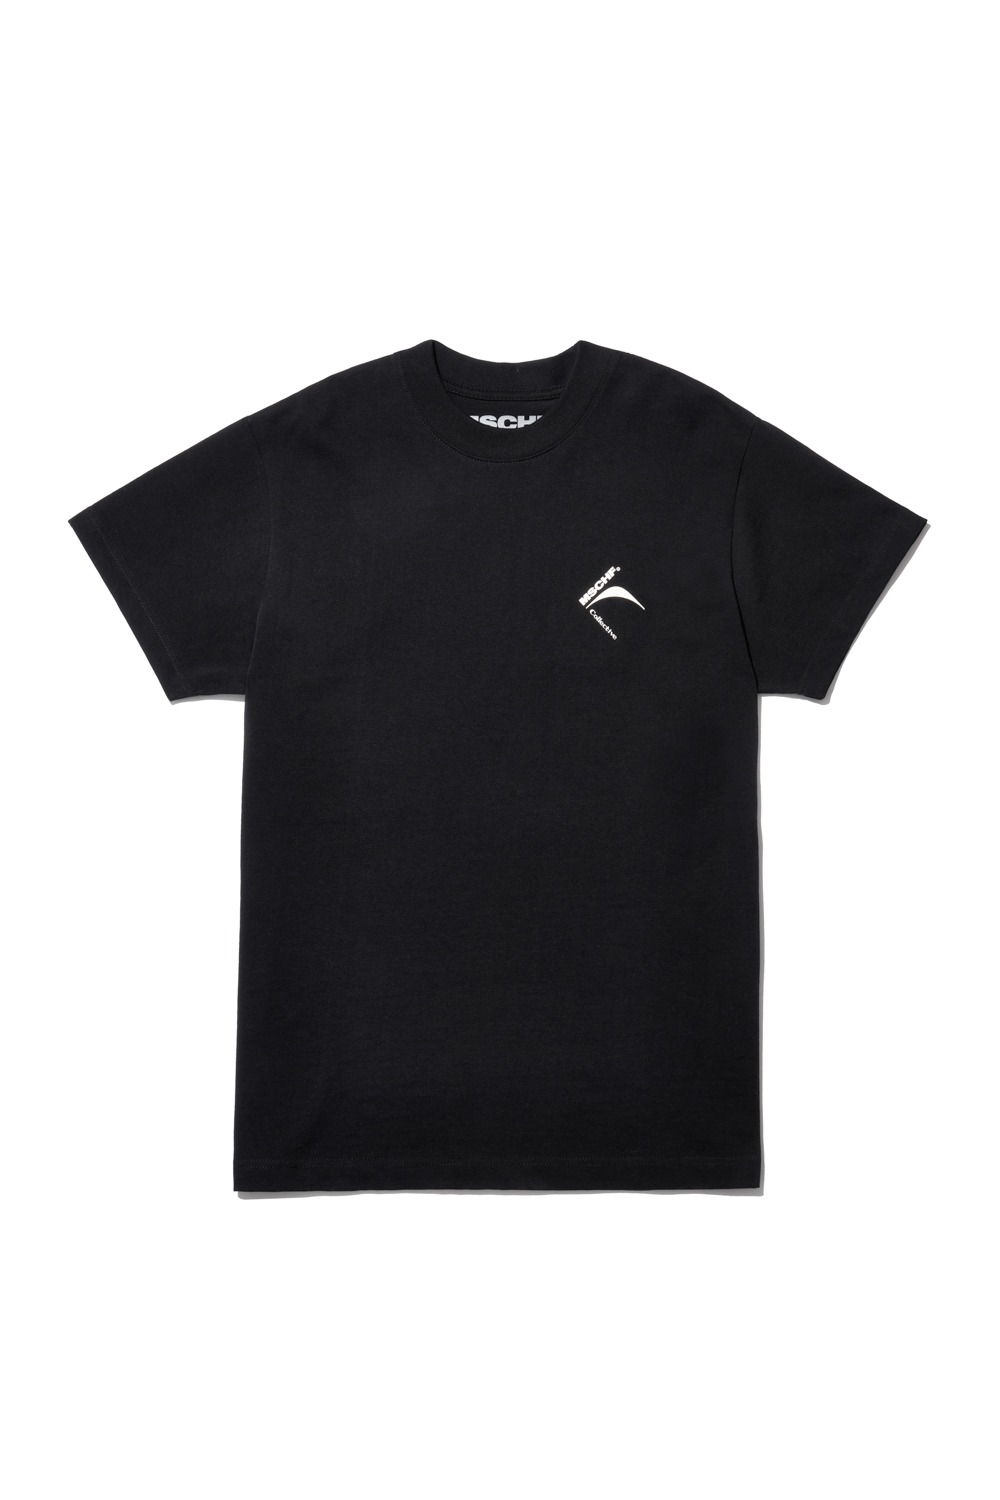 COLLECTIVE OG T-SHIRTS_black